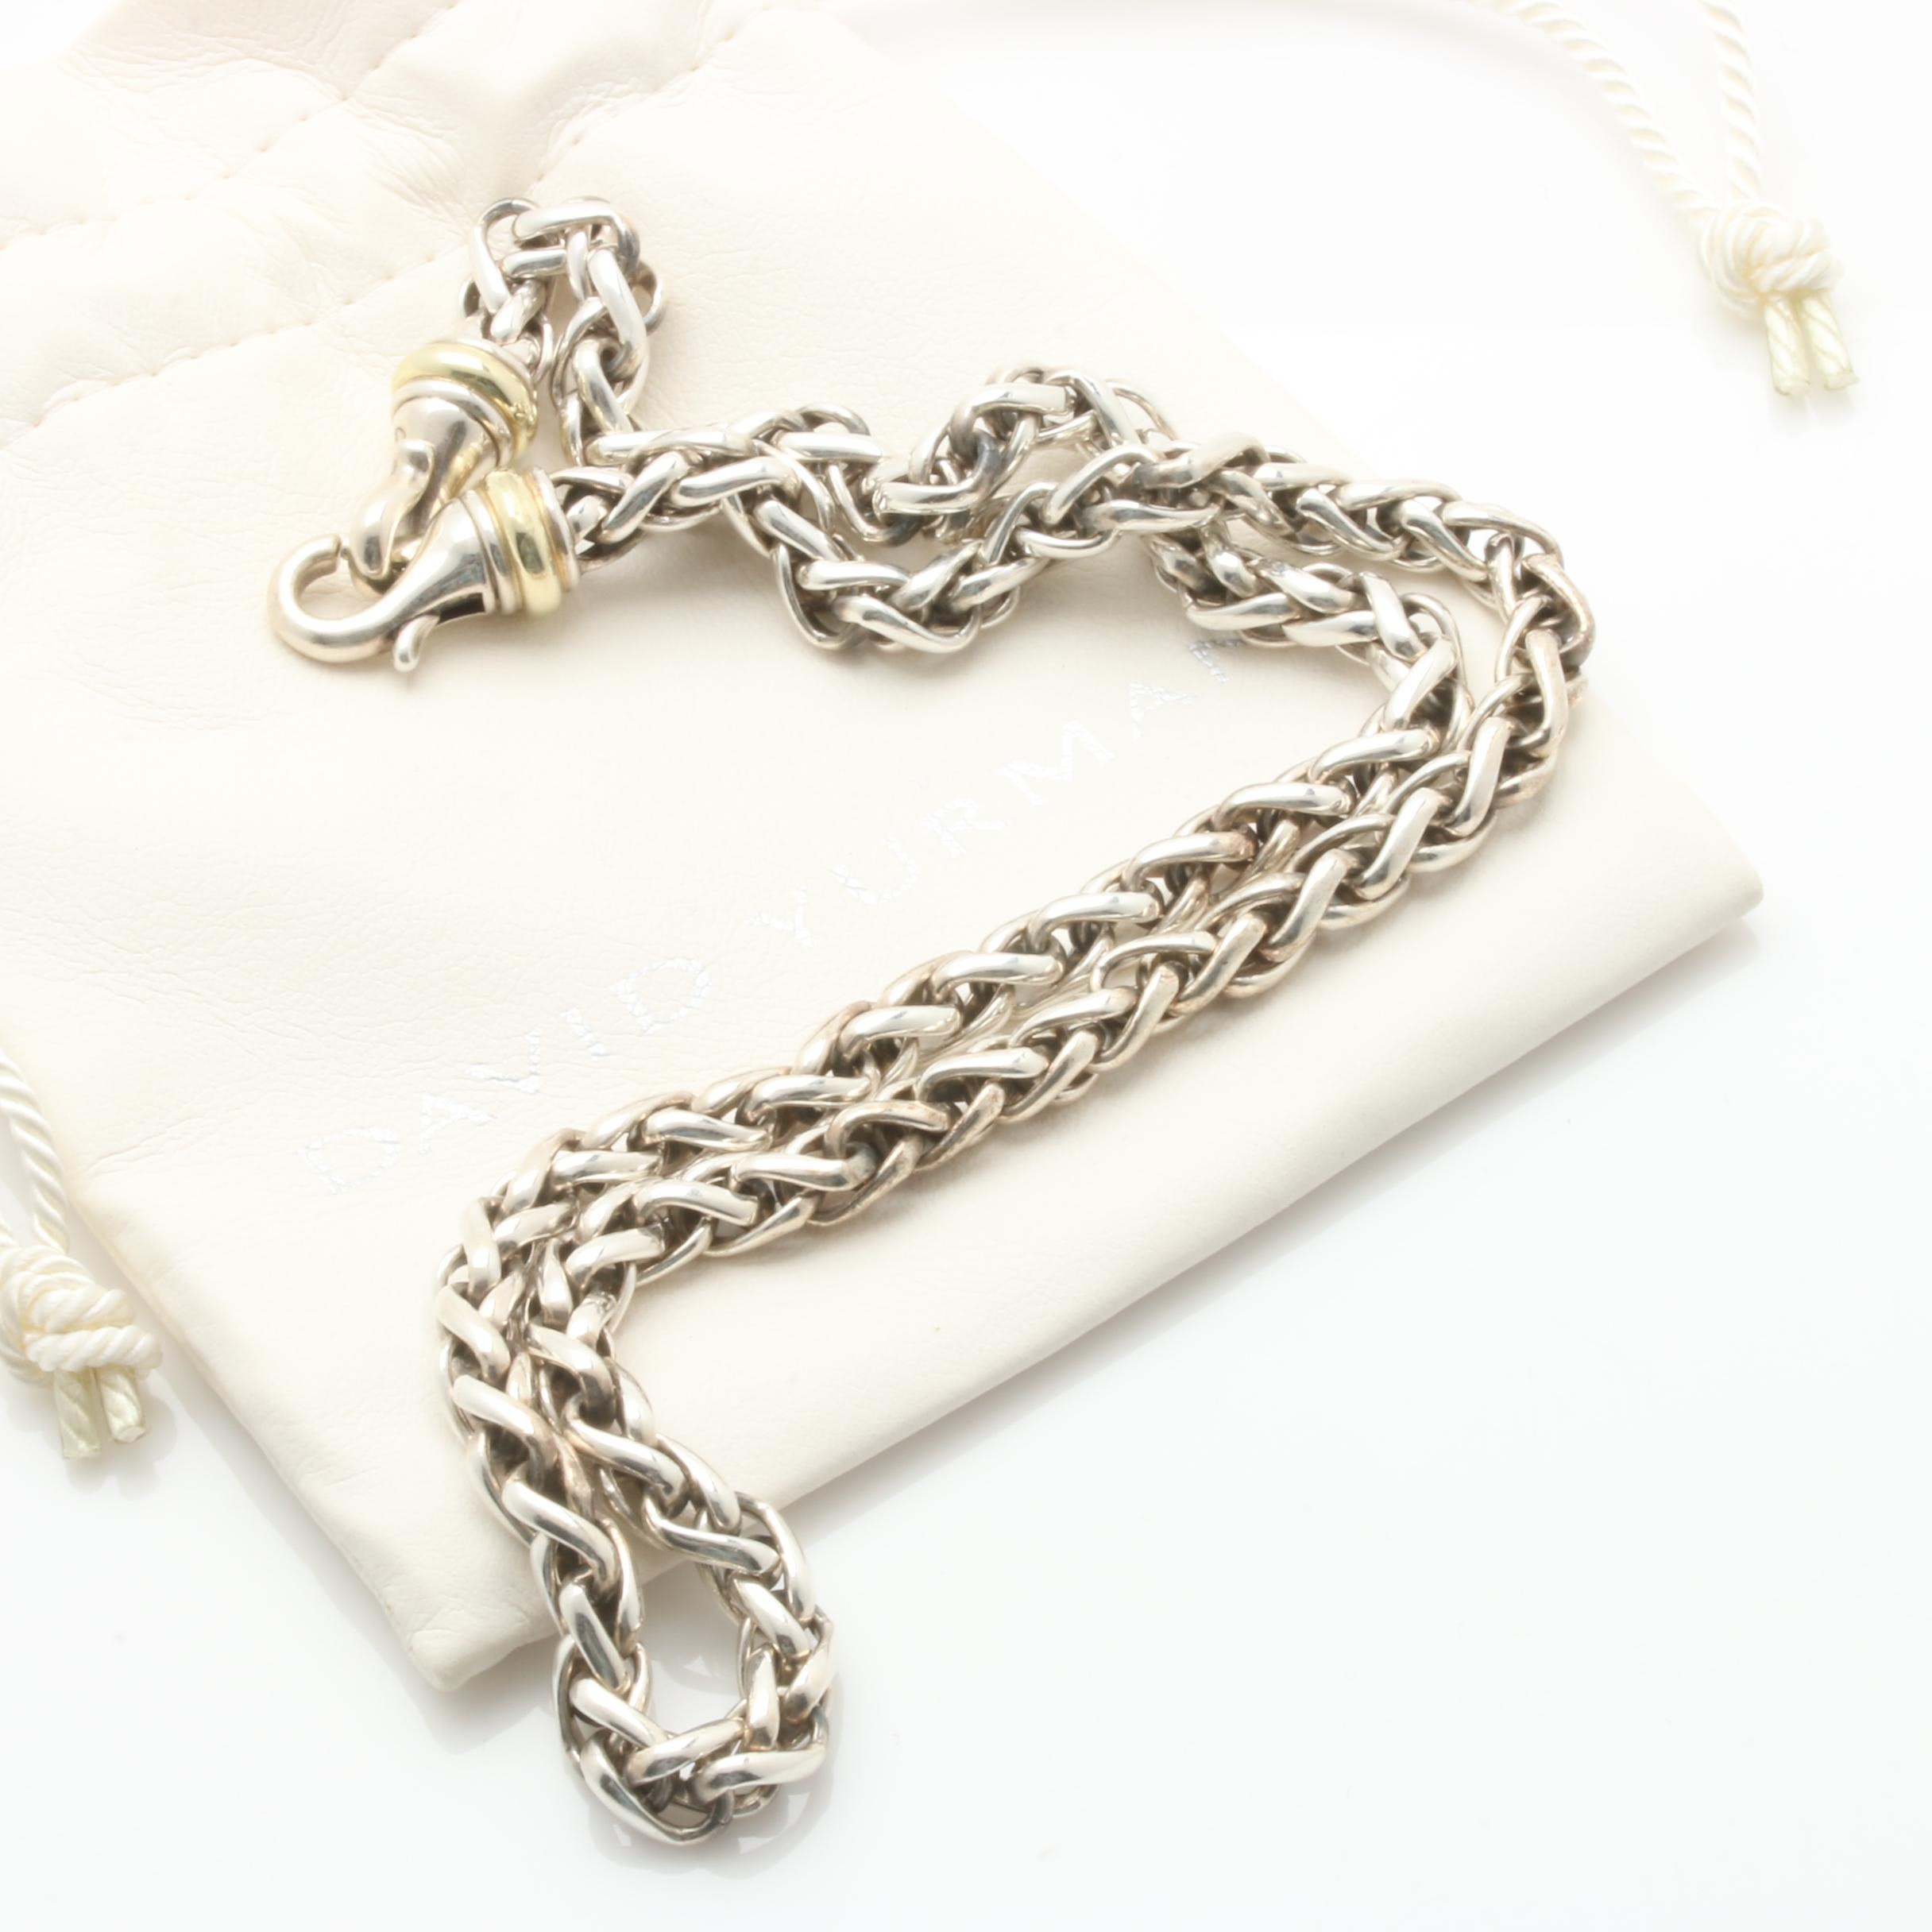 David Yurman Sterling Silver Necklace with 14K Accents